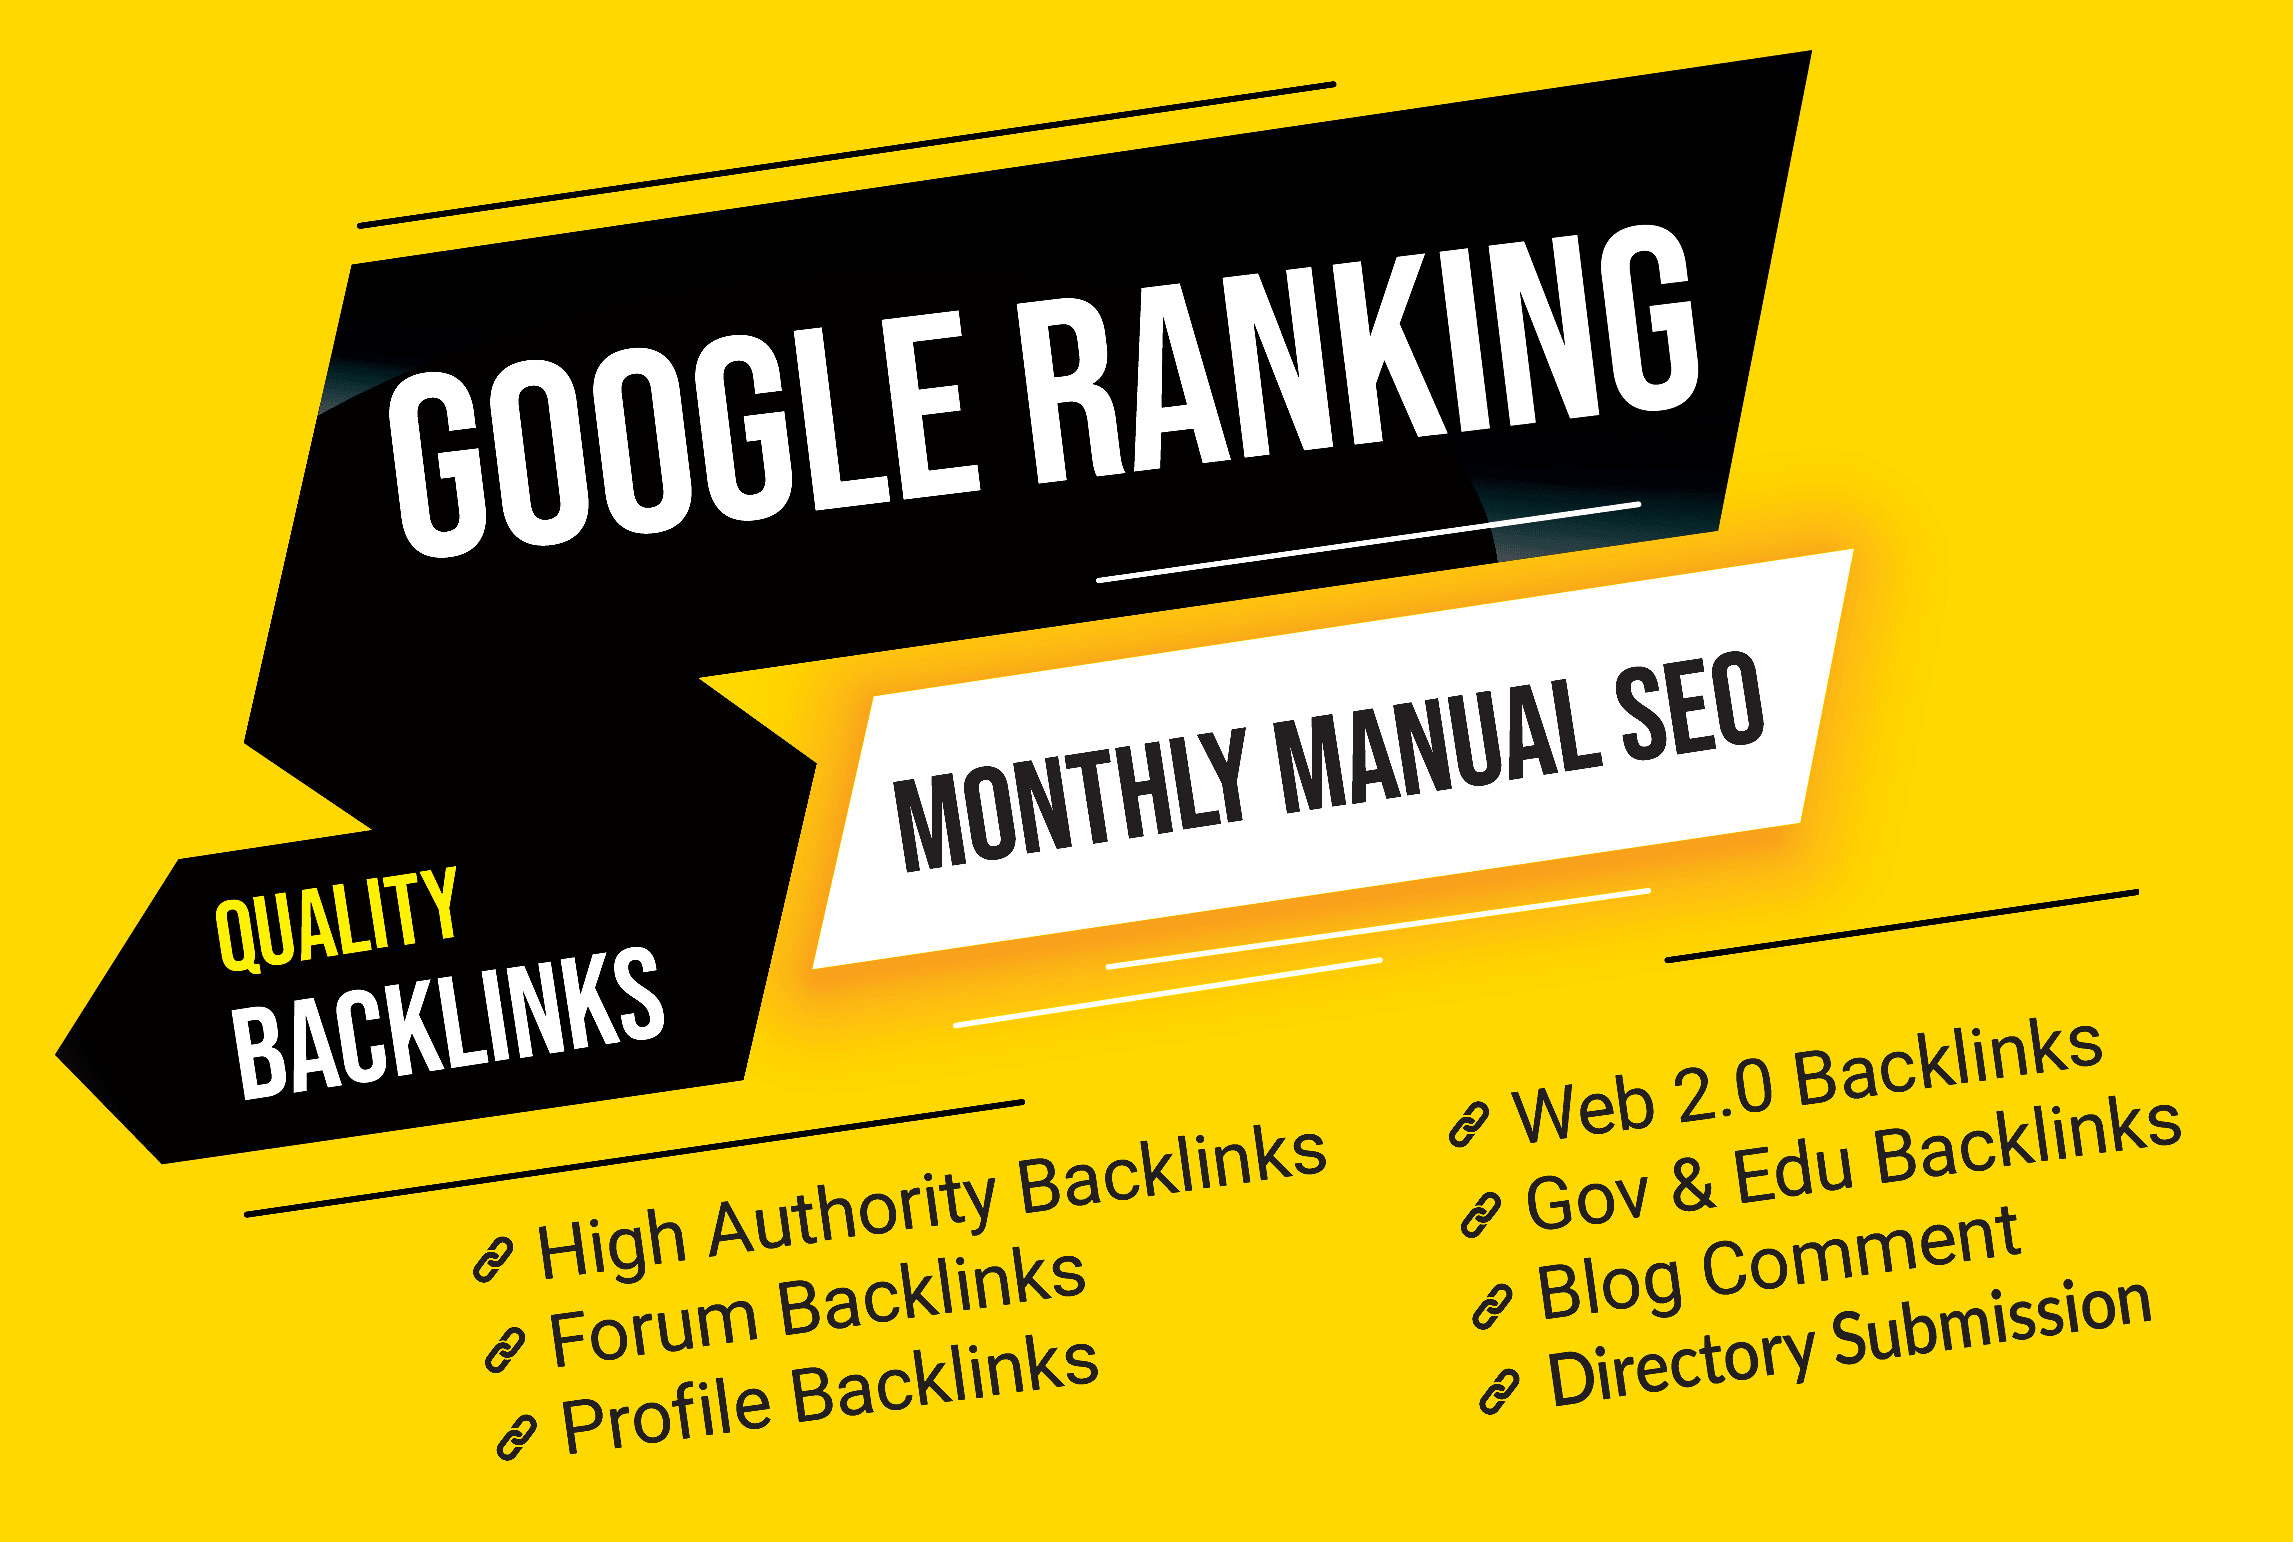 improve your google ranking with manual SEO backlinks service